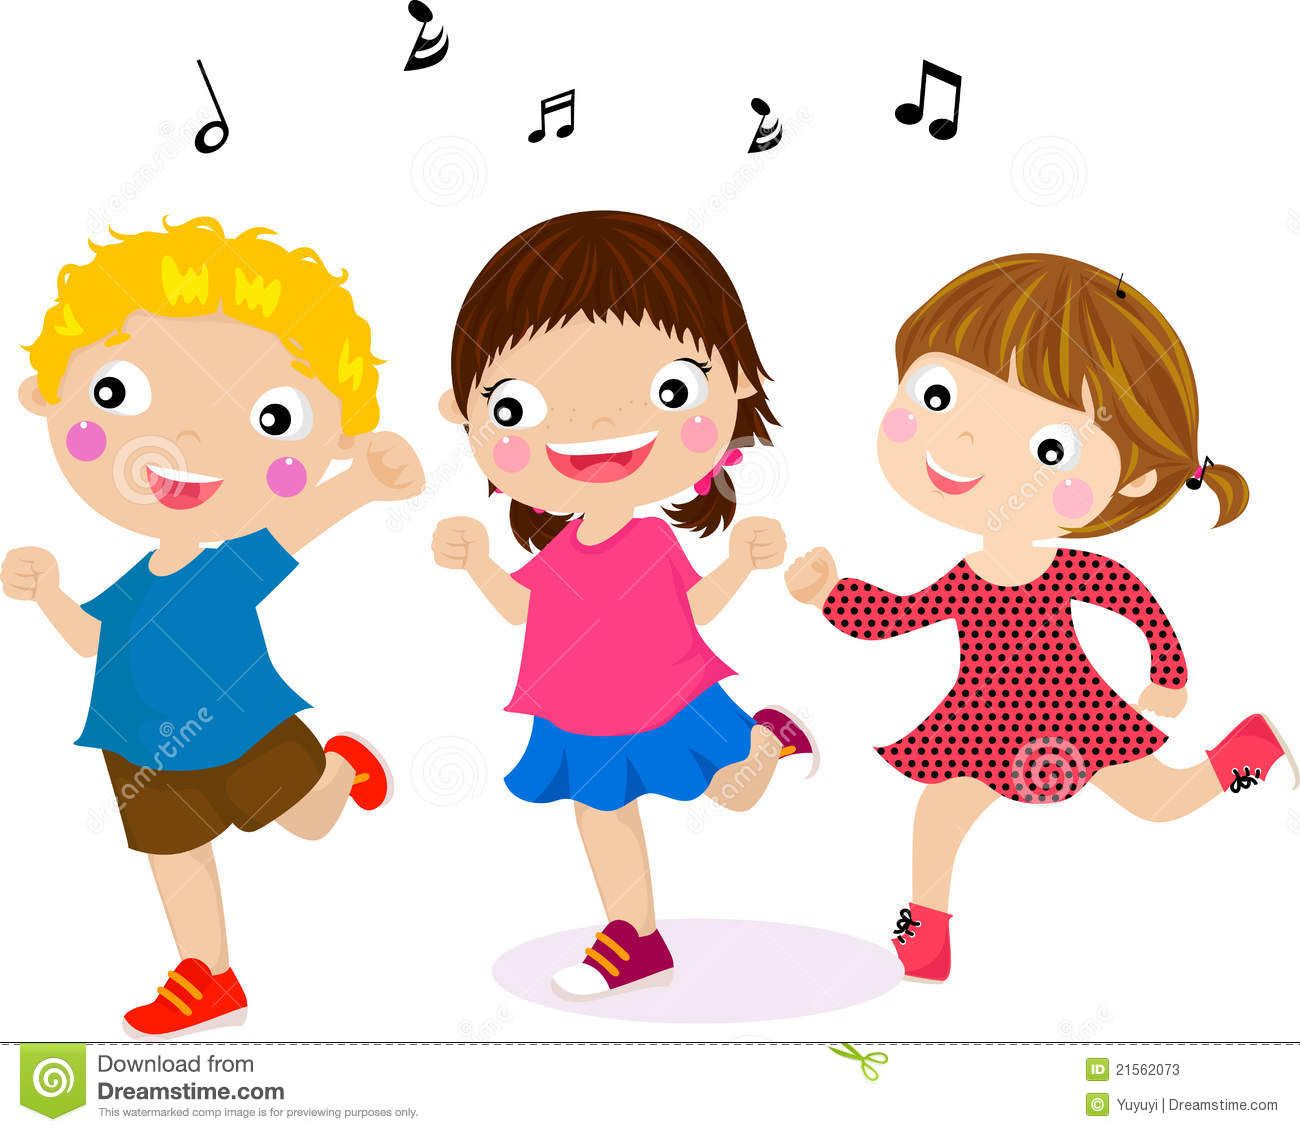 Toddler activity clipart image download Pics For > Children Singing And Dancing Clip Art | Classroom Ideas ... image download